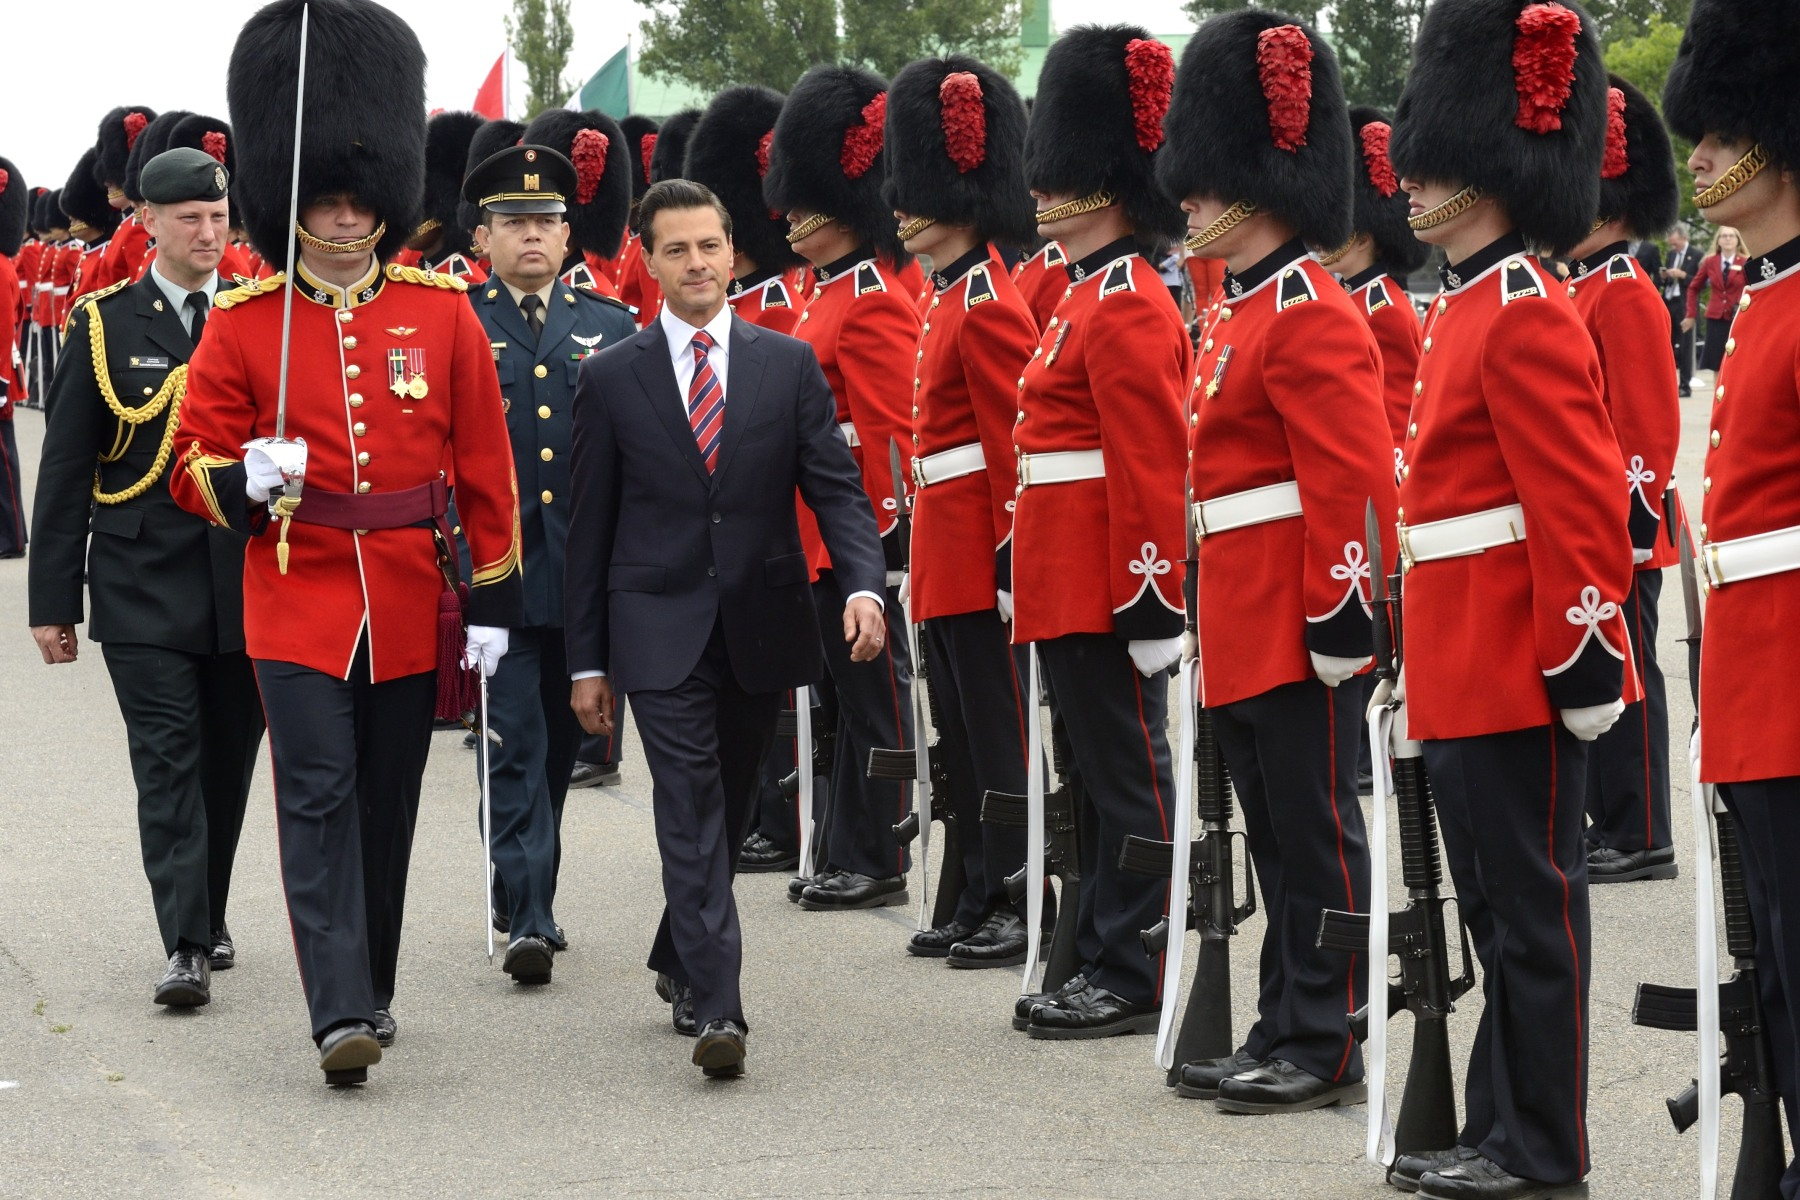 His Excellency Enrique Peña Nieto, President of the United Mexican States, inspected the guard of honour.